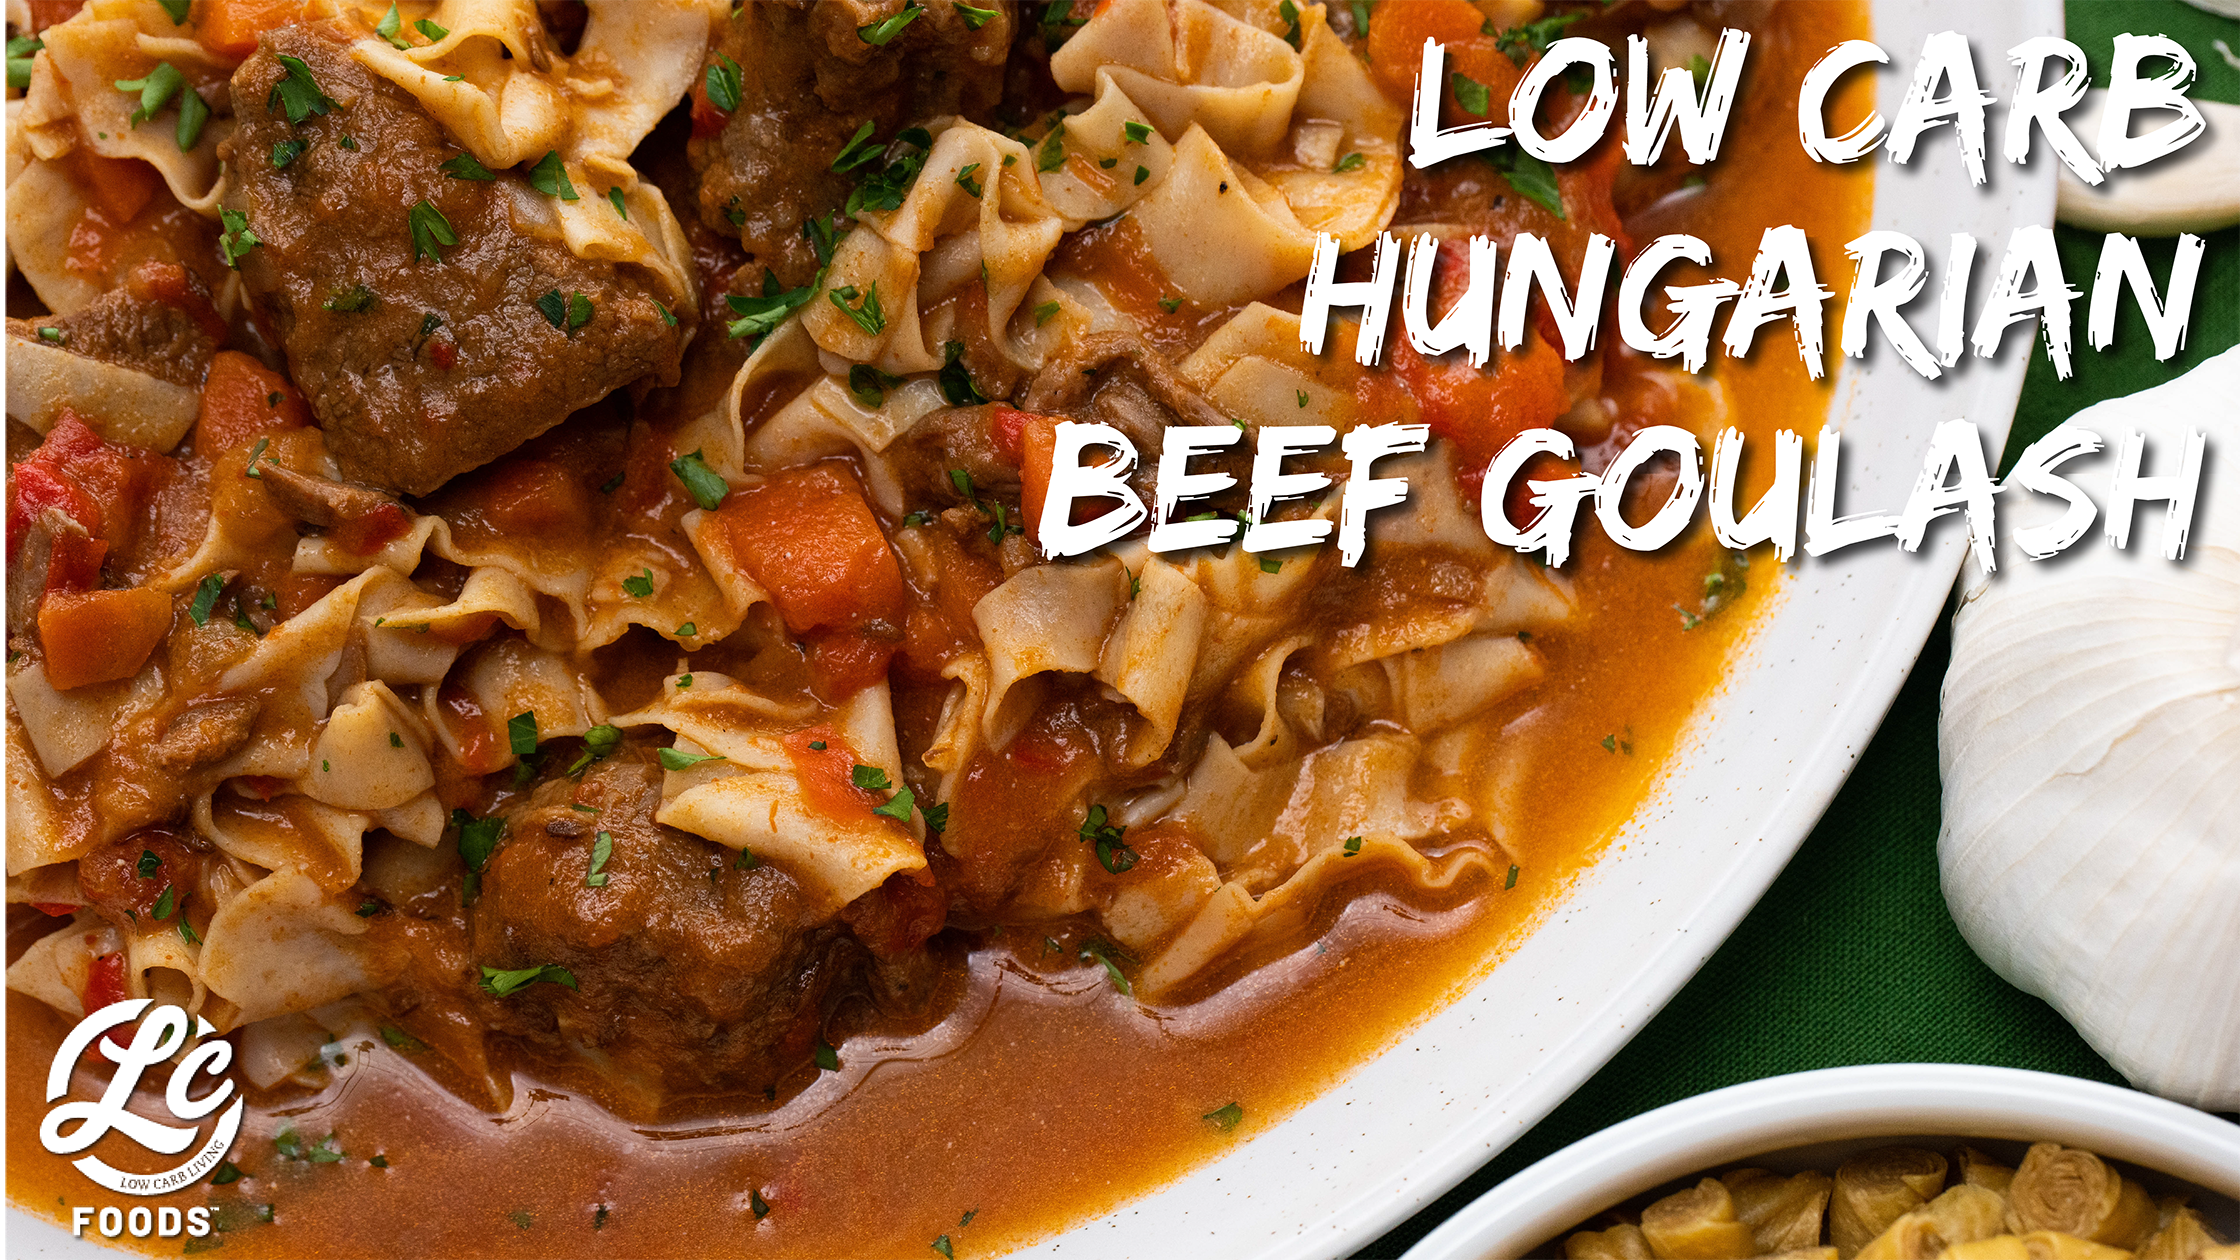 Thumbnail for Low Carb Hungarian Beef Goulash